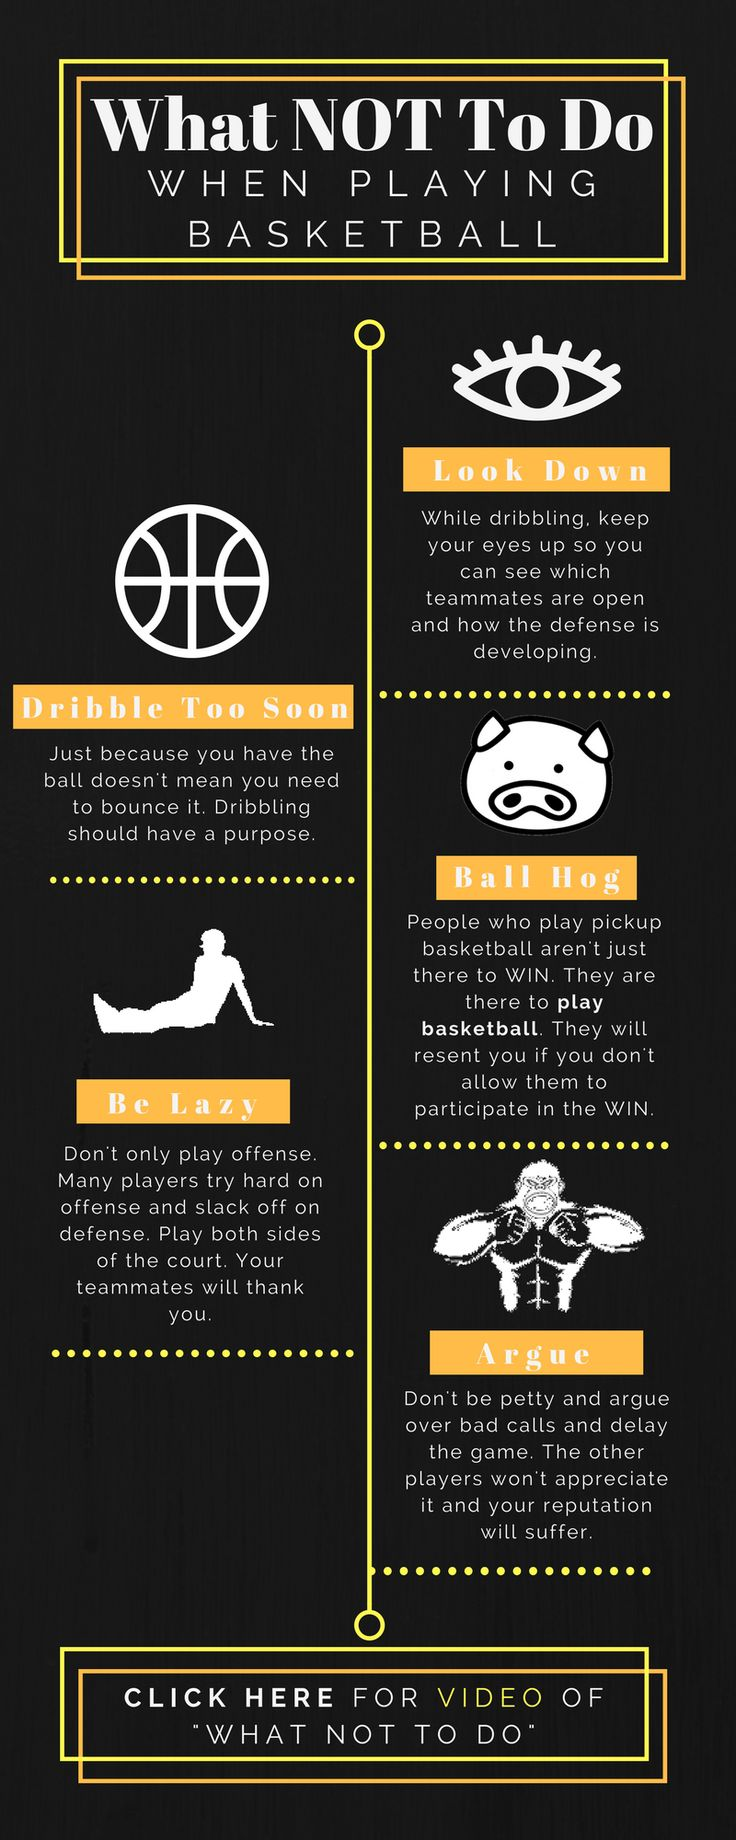 "What NOT To Do When Playing Pickup Basketball -- Click image to see ""What NOT To Do"" Video https://youtu.be/LtVZtM72mpI"